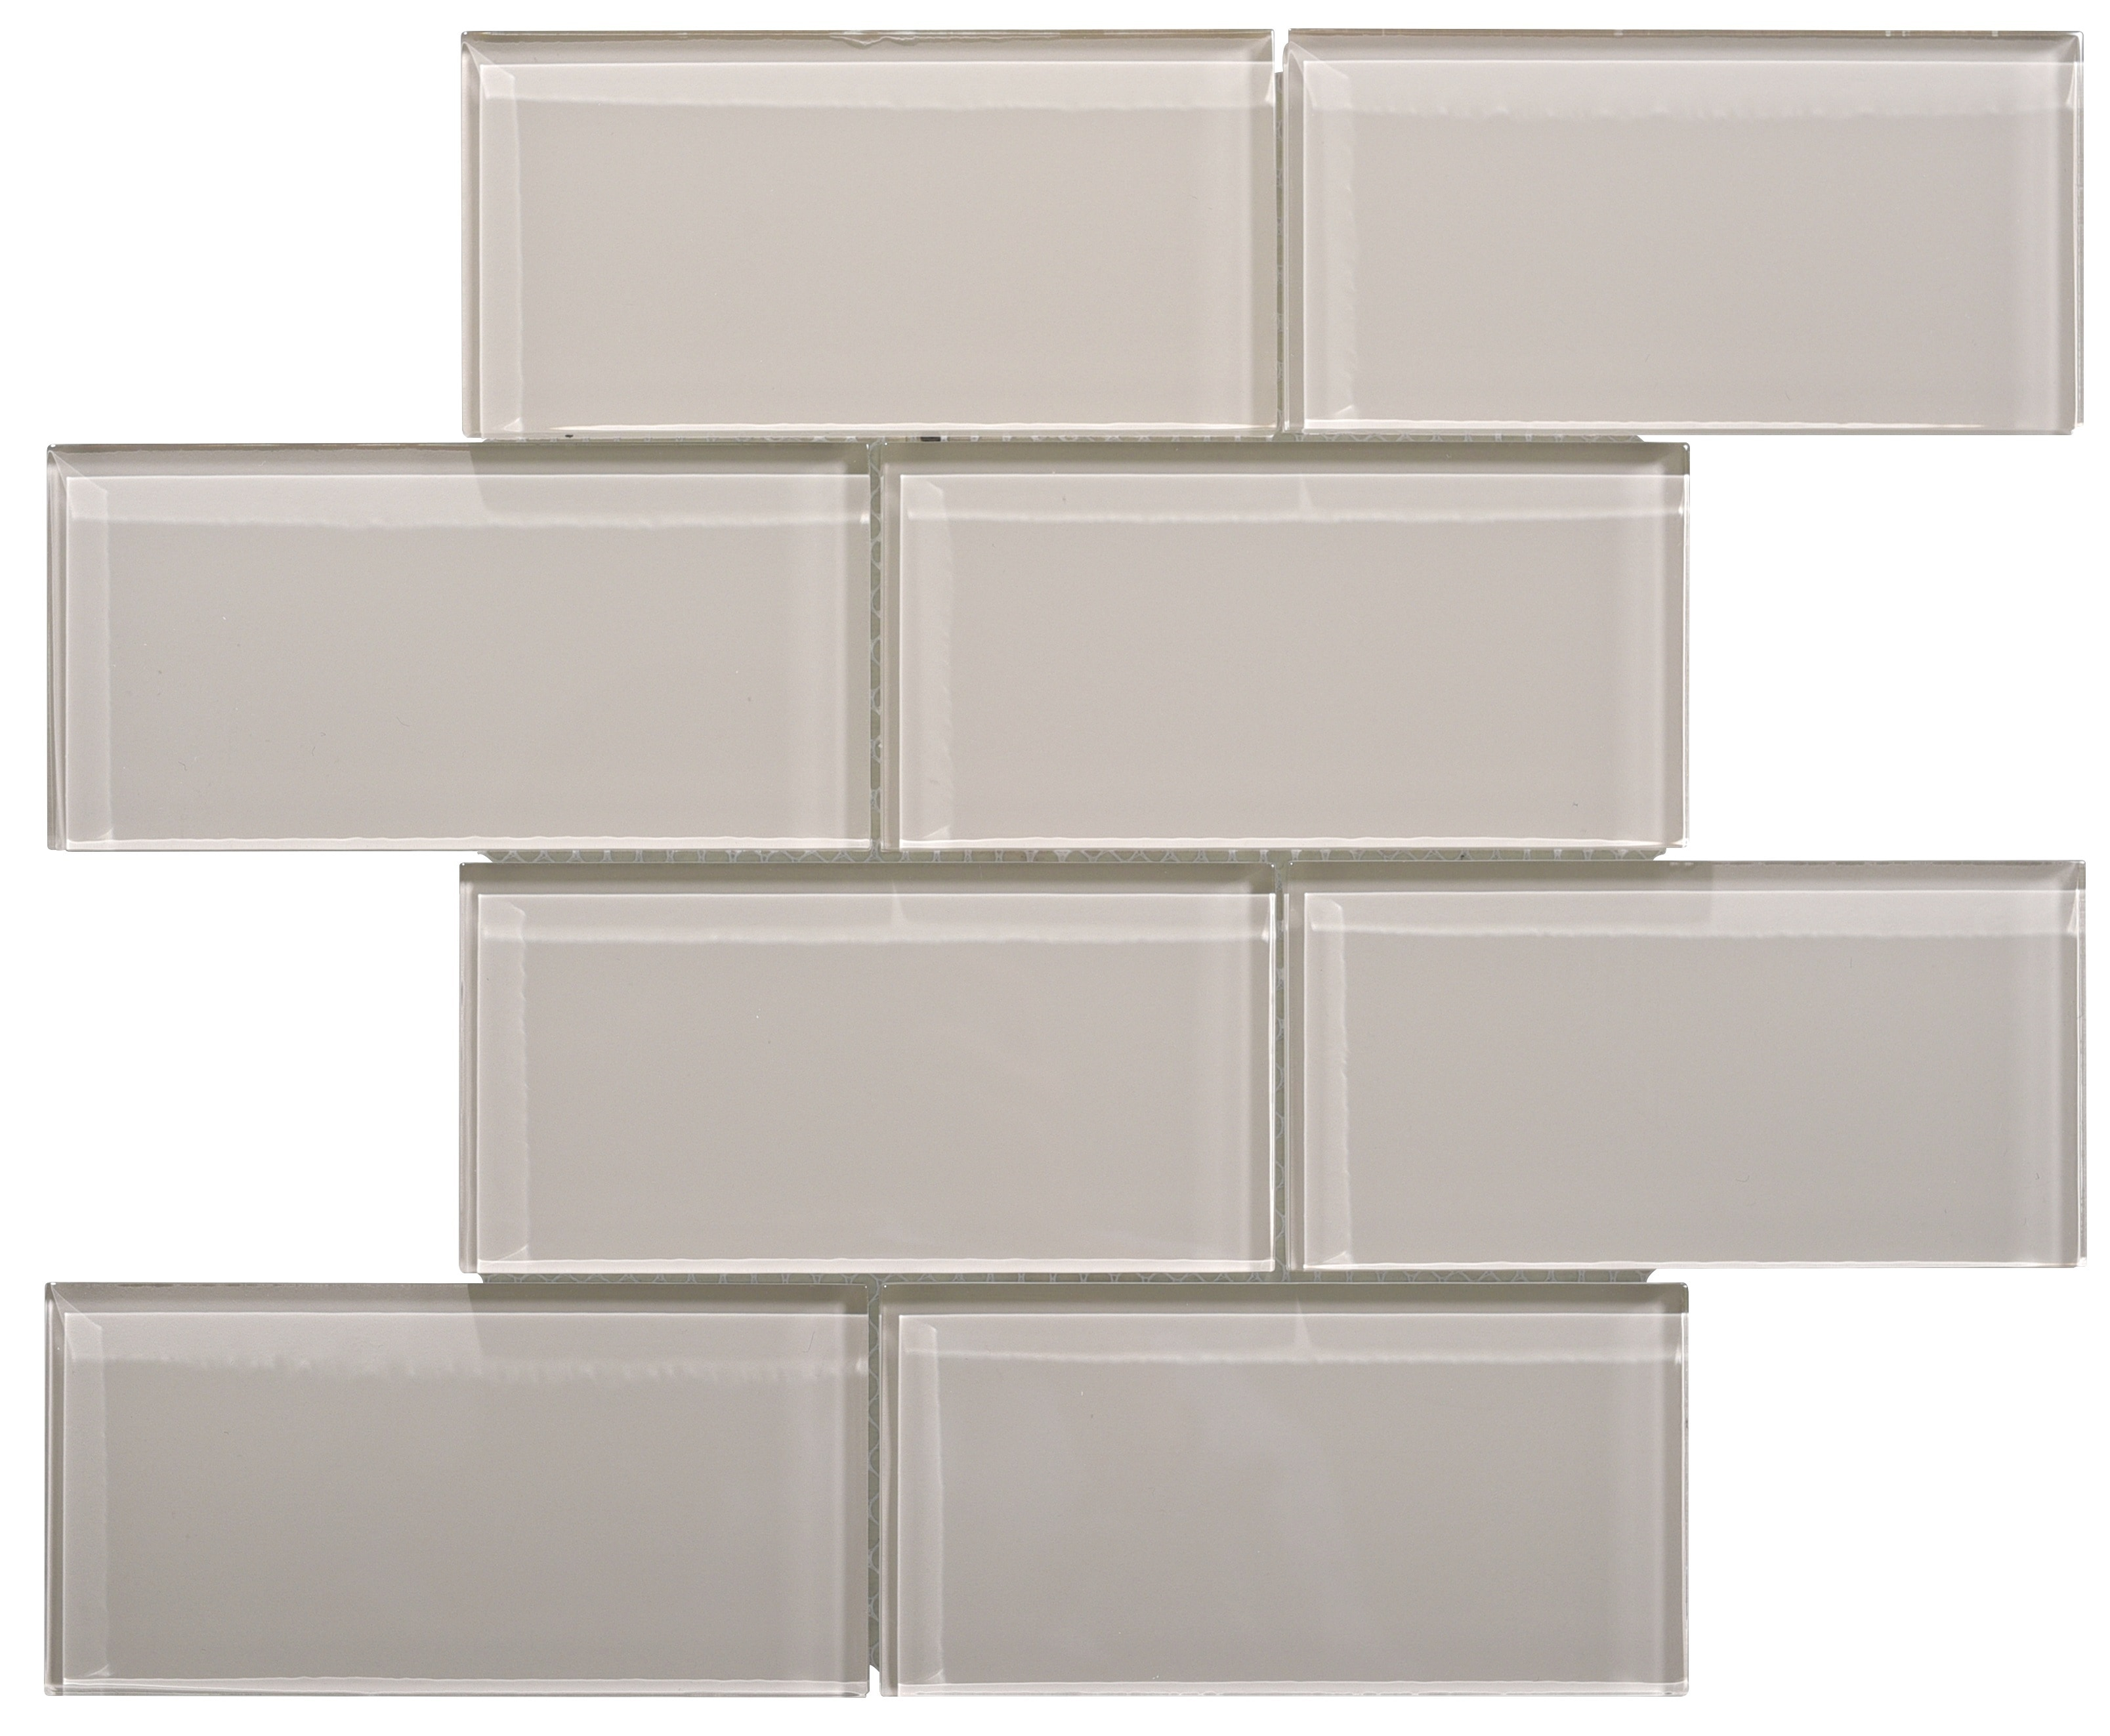 Glass Mosaic / 16 x 12 x 0.31 inches / Glossy Large Glass Subway Tile In Icy Gray 0